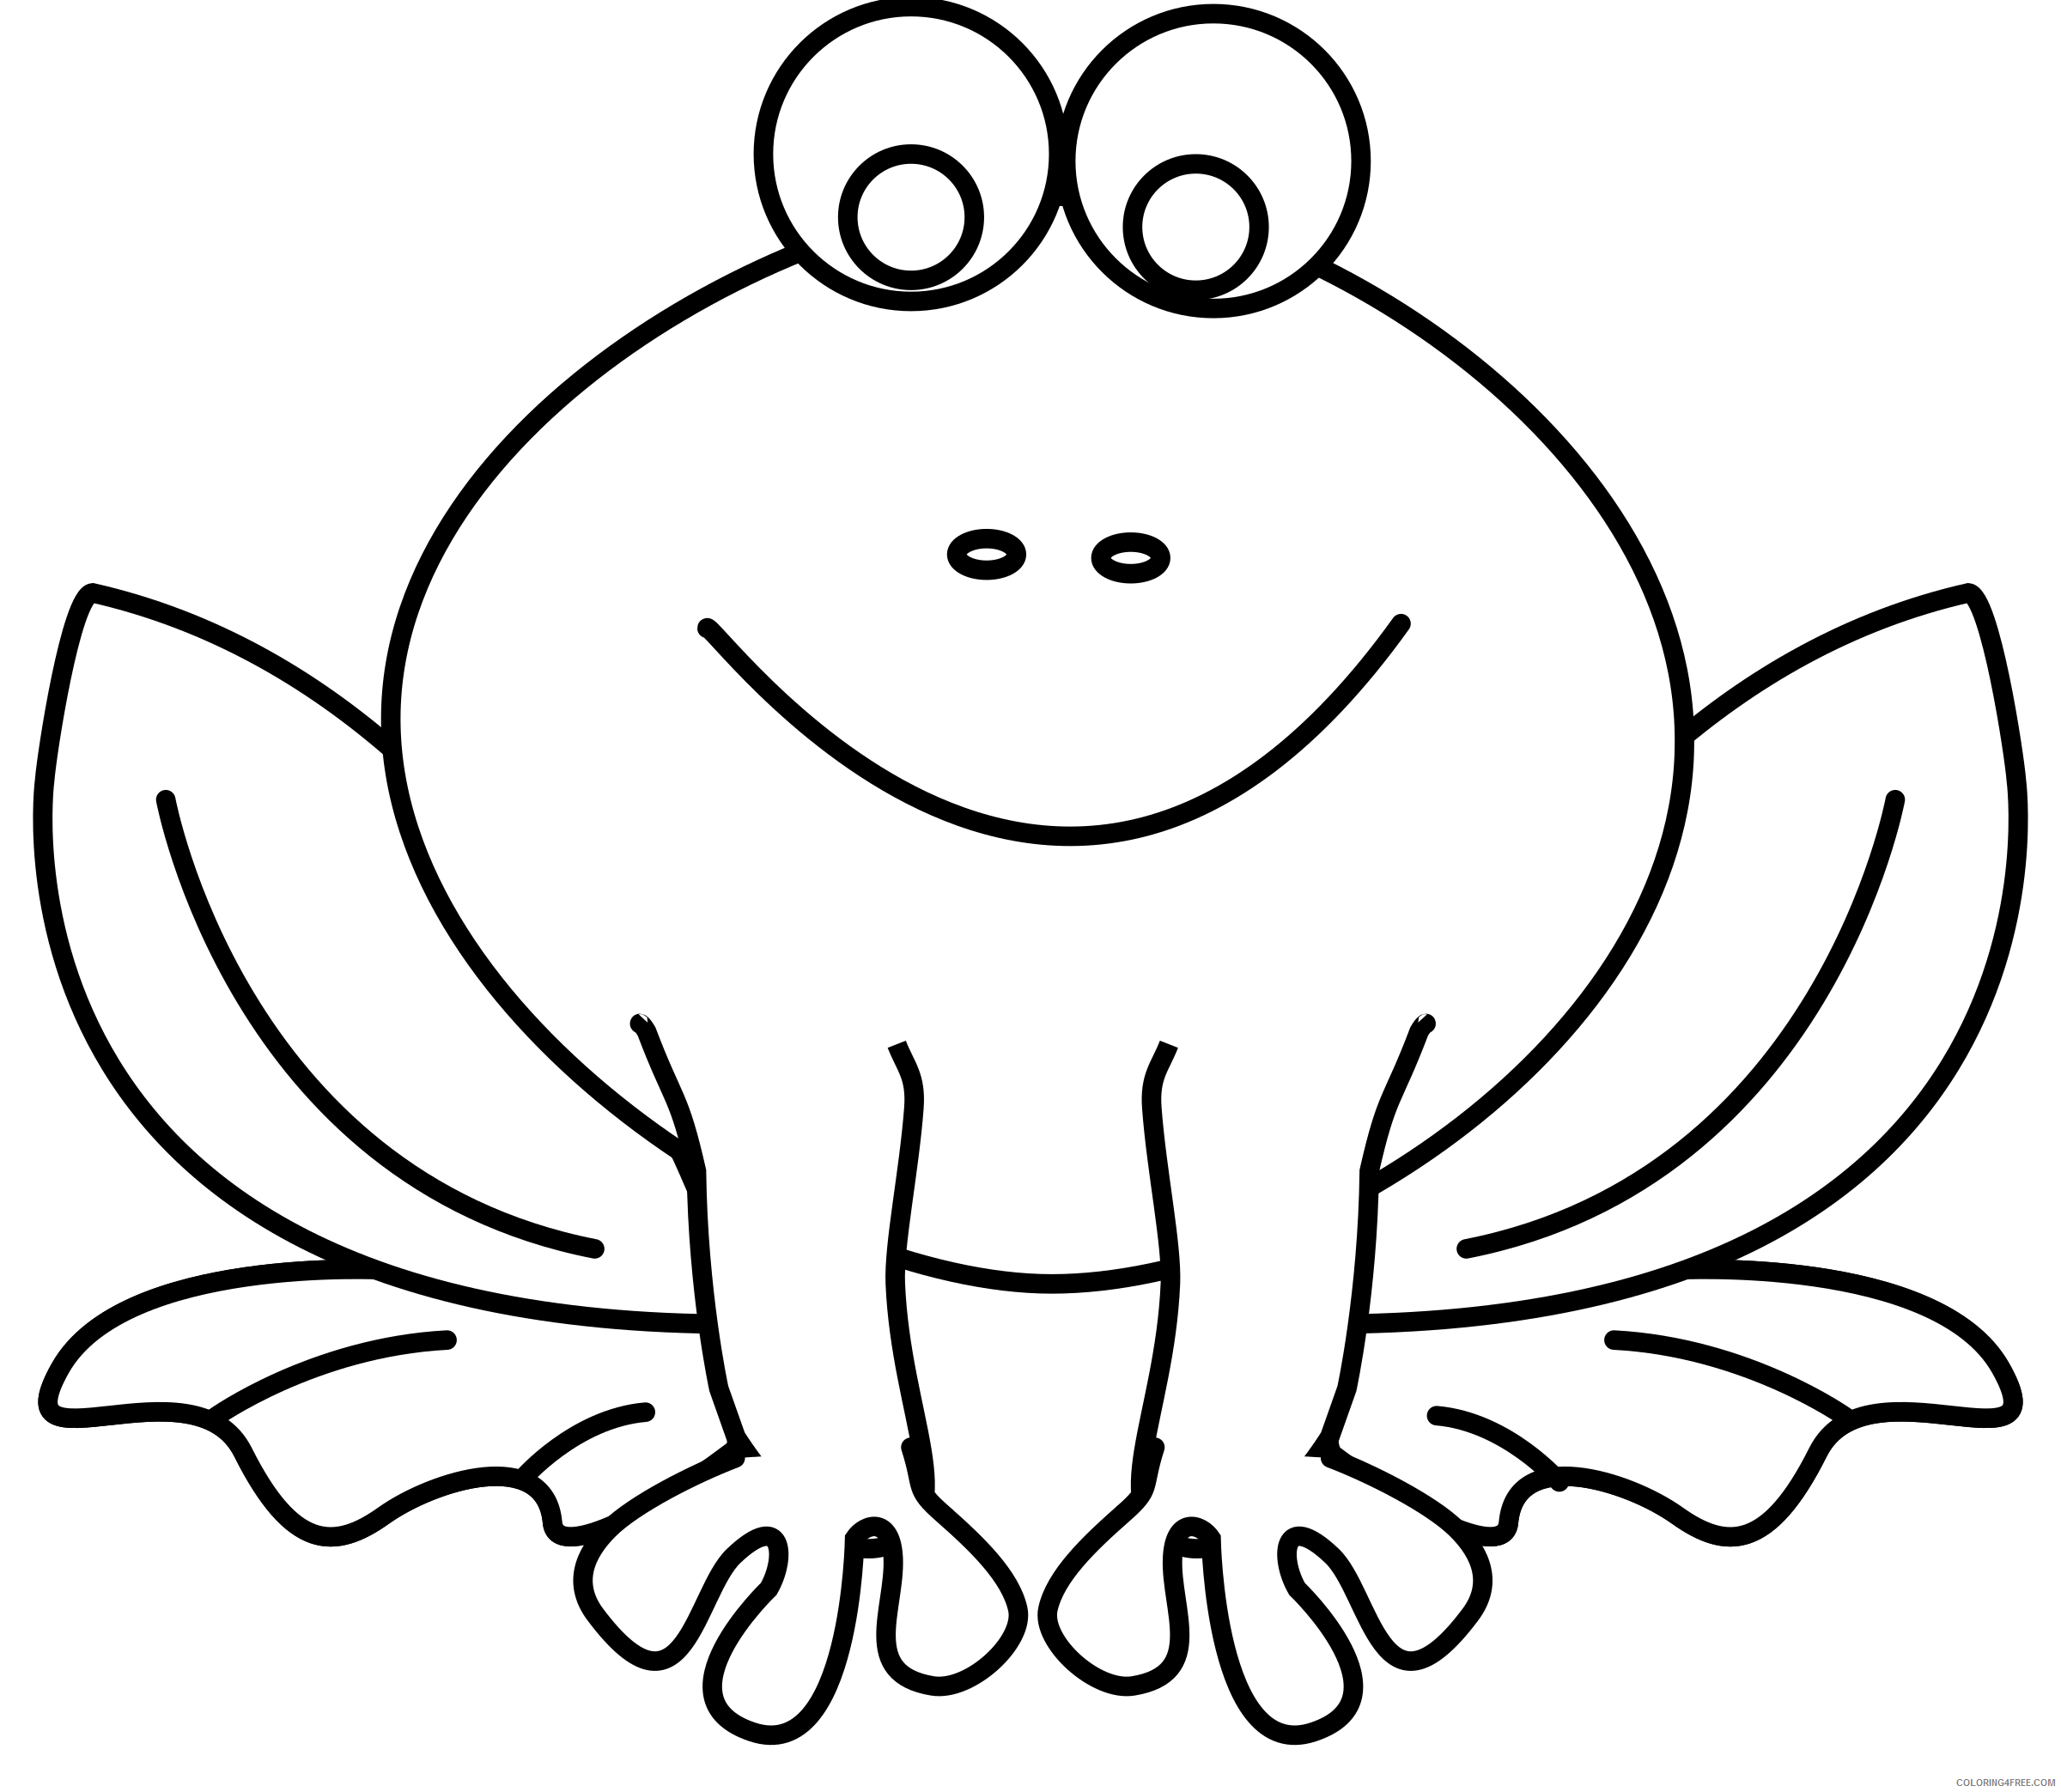 Frog Coloring Pages frog line art pixabella green Printable Coloring4free